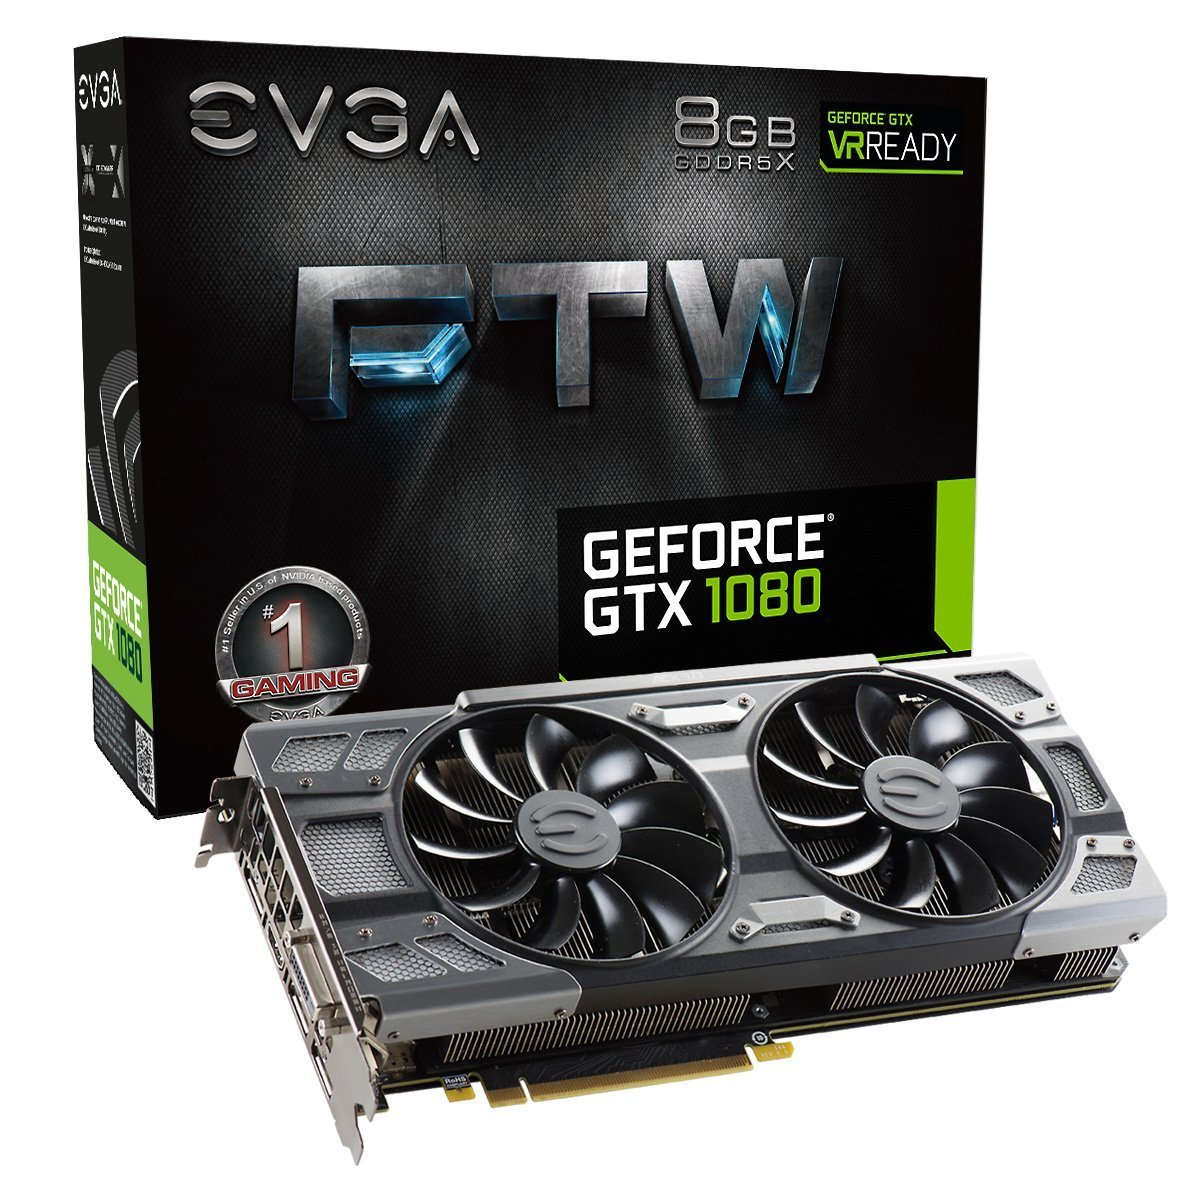 EVGA GeForce GTX 1080 FTW GAMING ACX 3.0, 8GB GDDR5X, RGB LED, Graphics Card 08G-P4-6286-KR